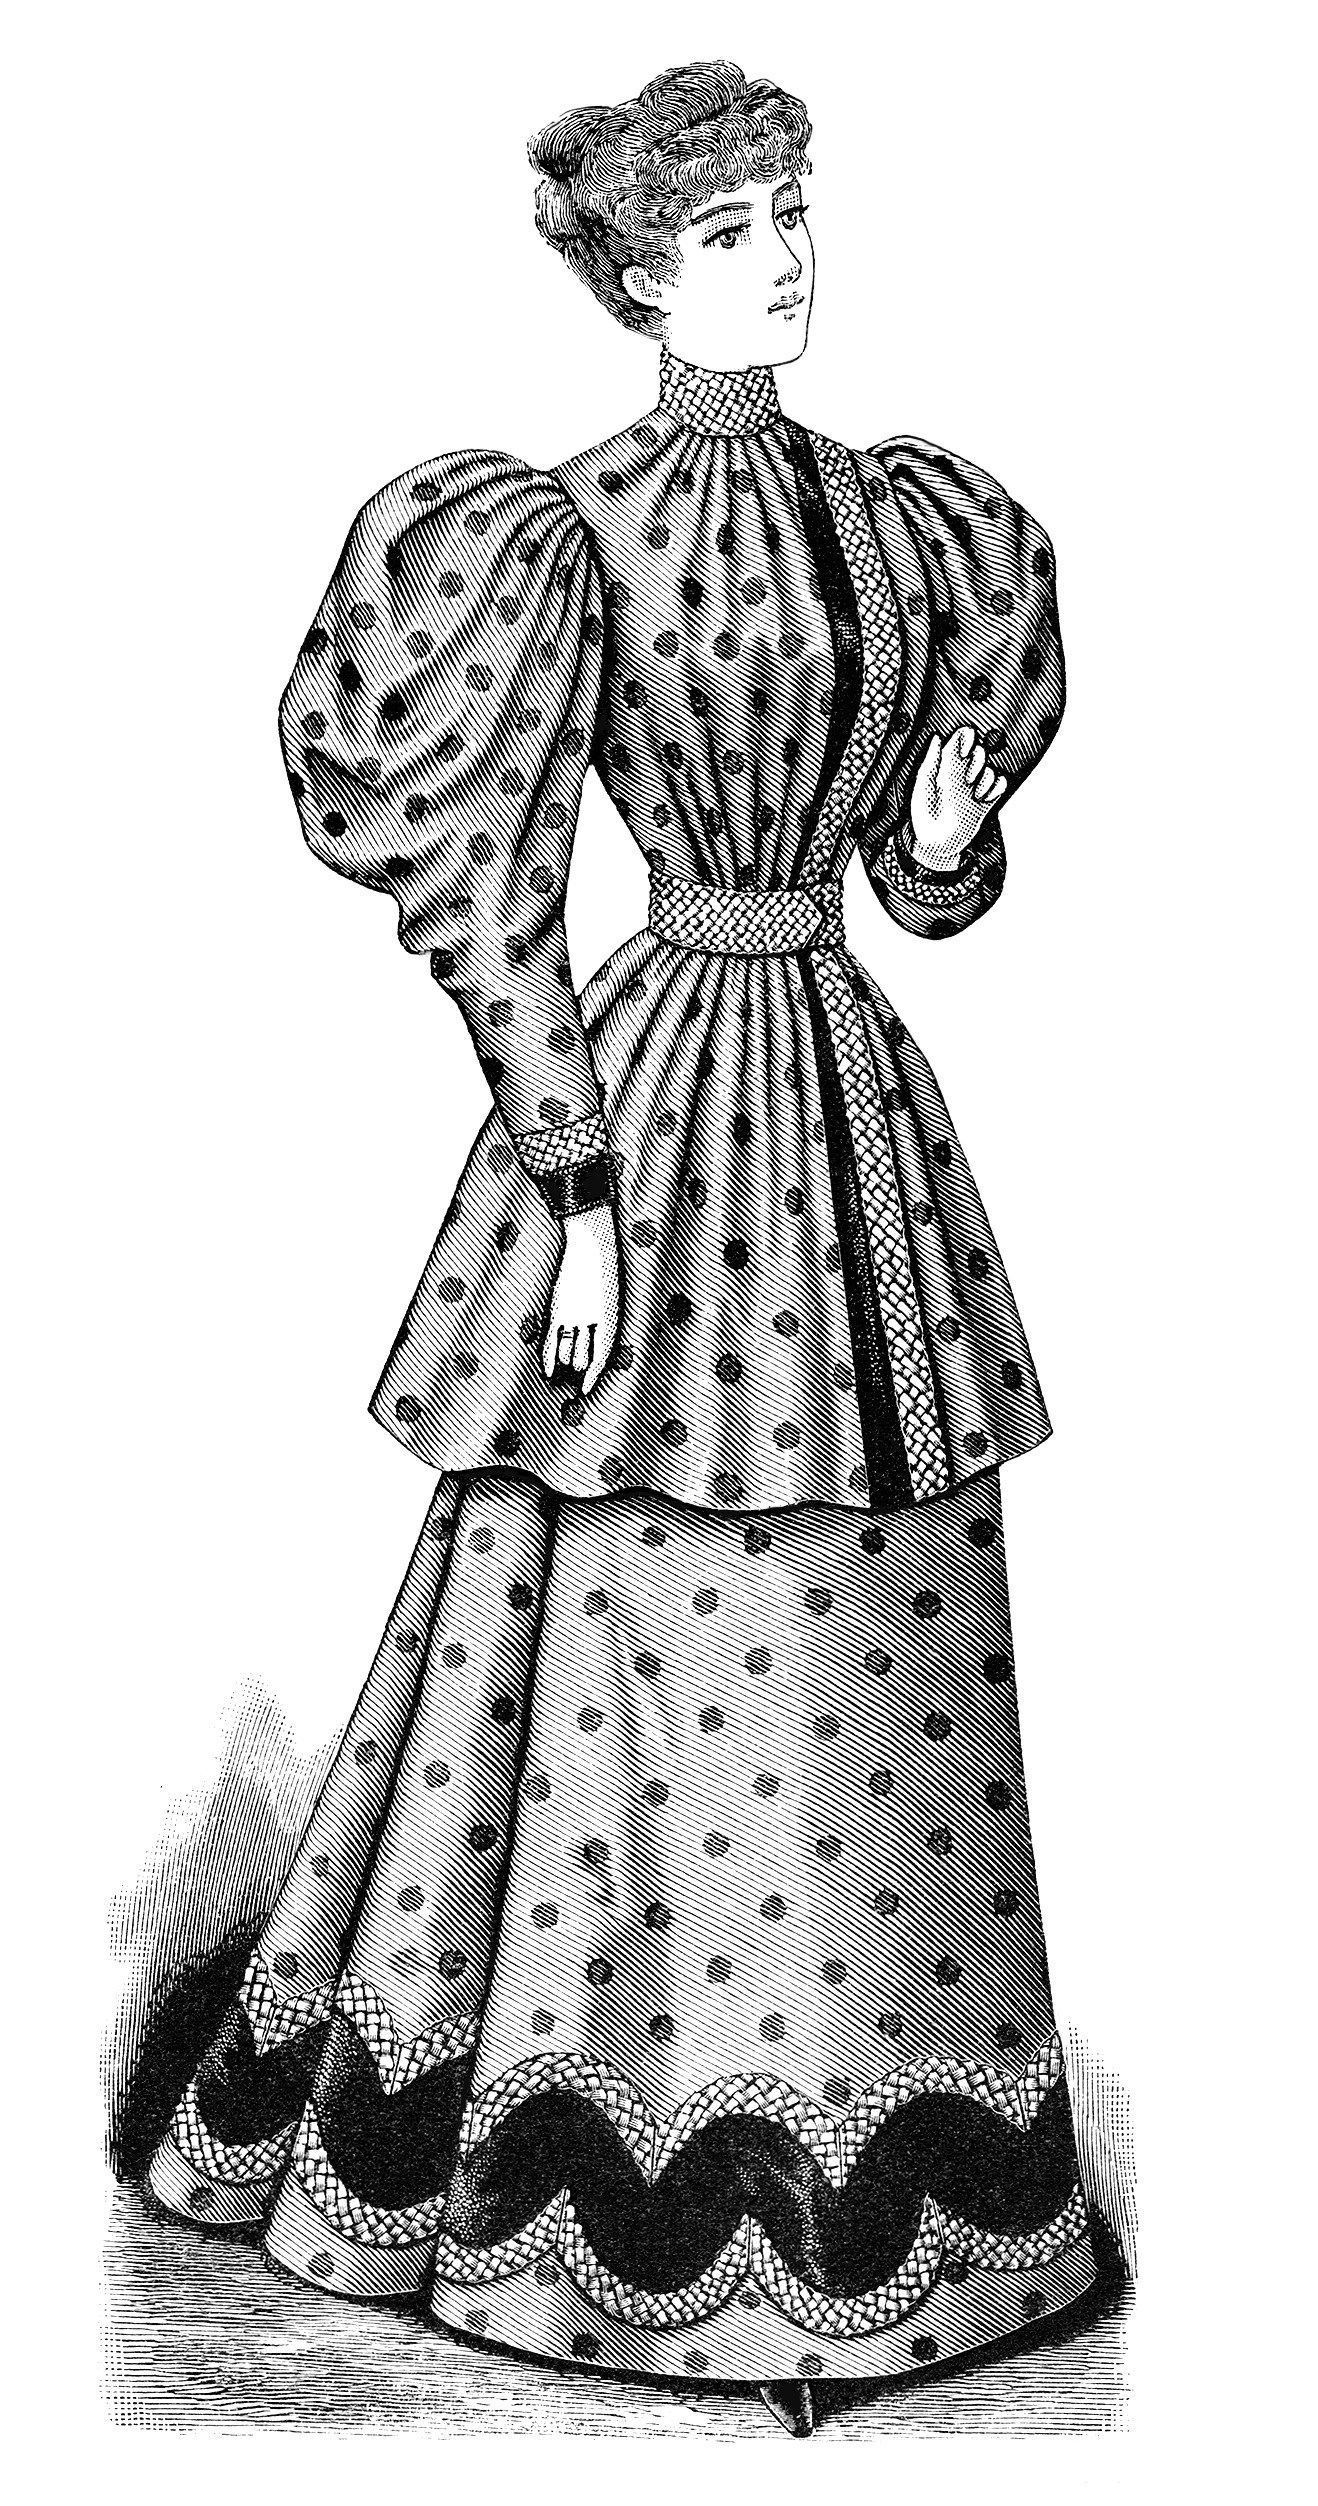 1900s woman in dress clipart black and white banner freeuse library Victorian lady clip art, old fashioned polka dot dress illustration ... banner freeuse library